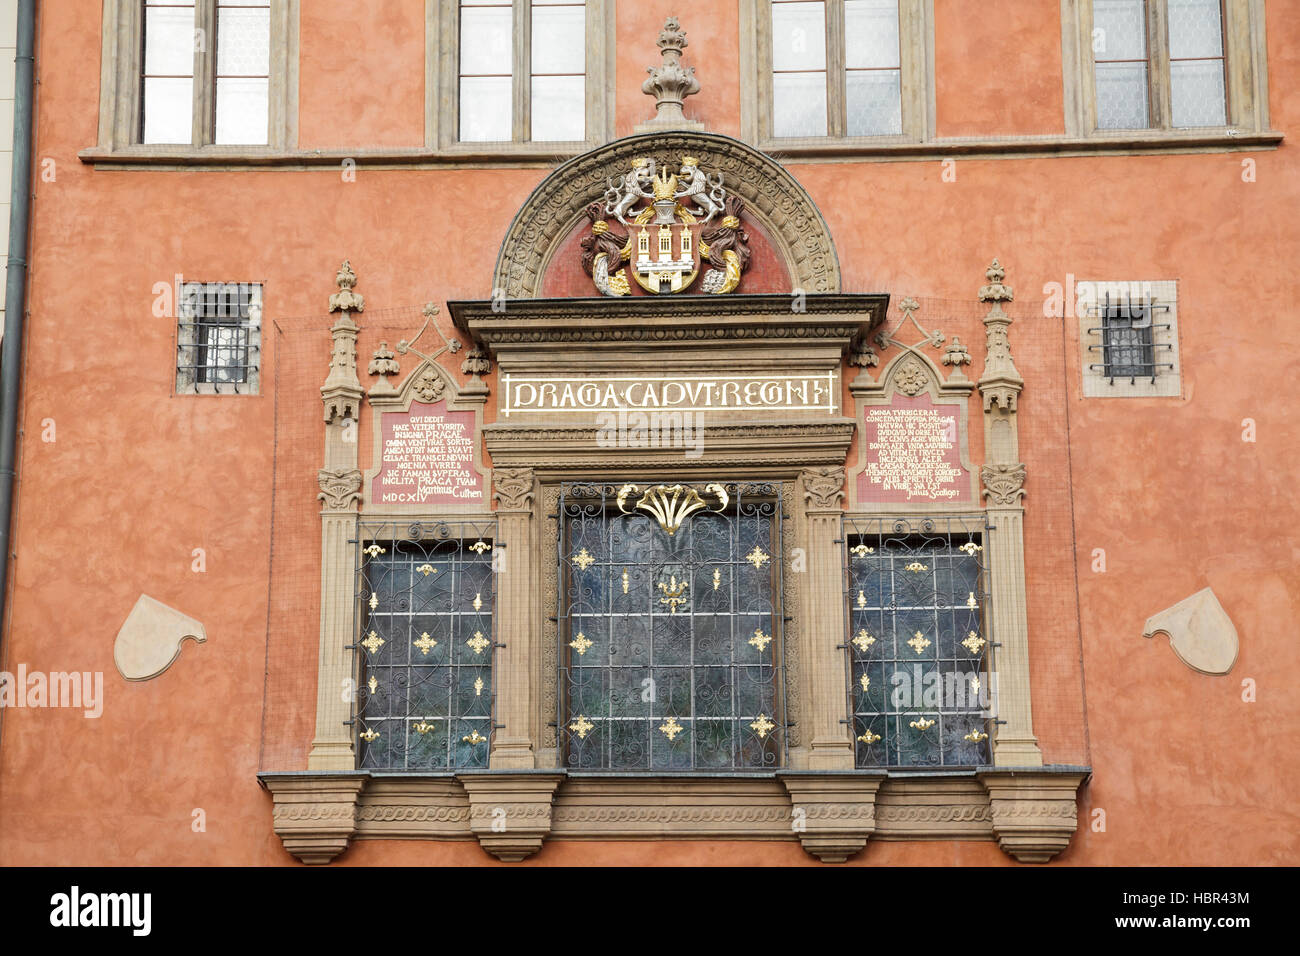 Old Town Coat of Arms on the Old Town Hall, Old Town Square, Prague, Czech Republic - Stock Image